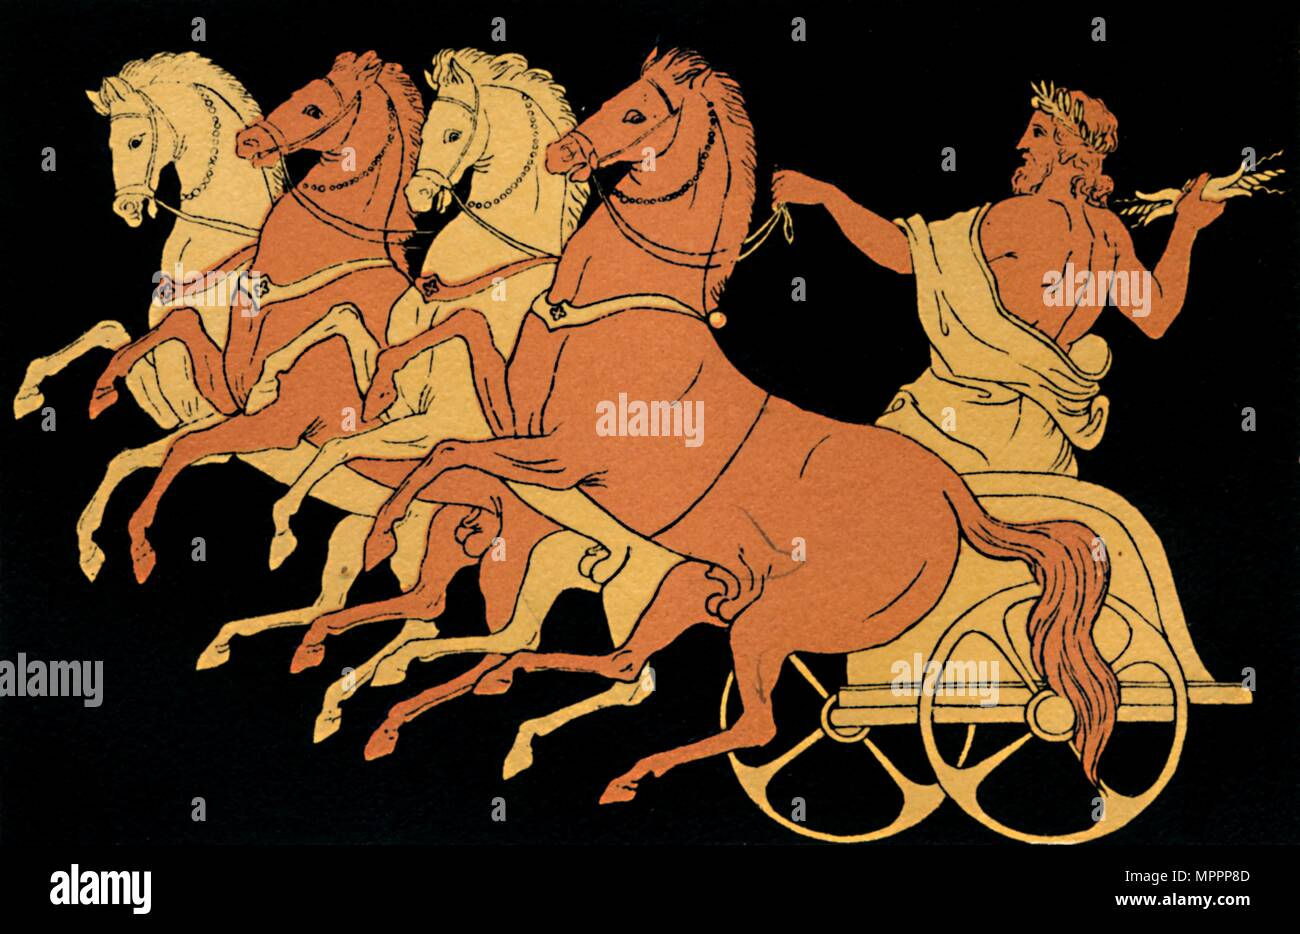 'The Chariot of Zeus', 1880. Artist: Antique. - Stock Image